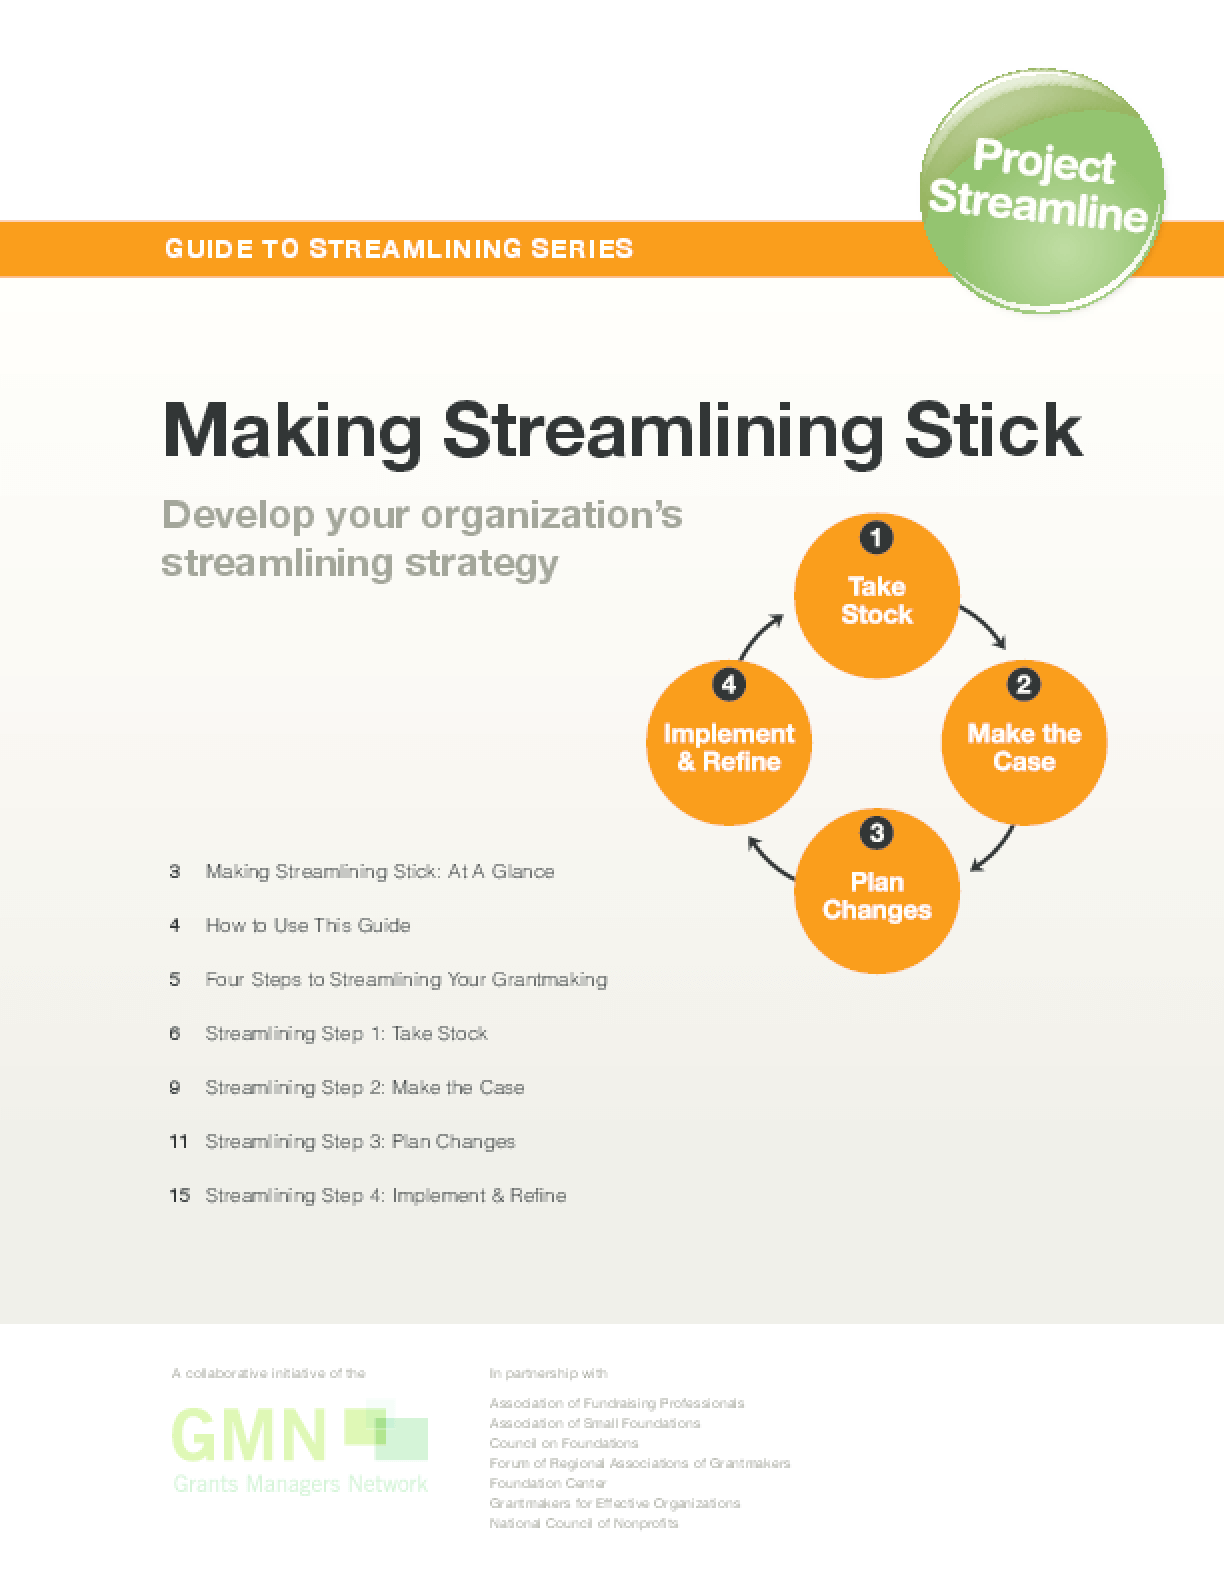 Guide to Streamlining Series: Making Streamlining Stick